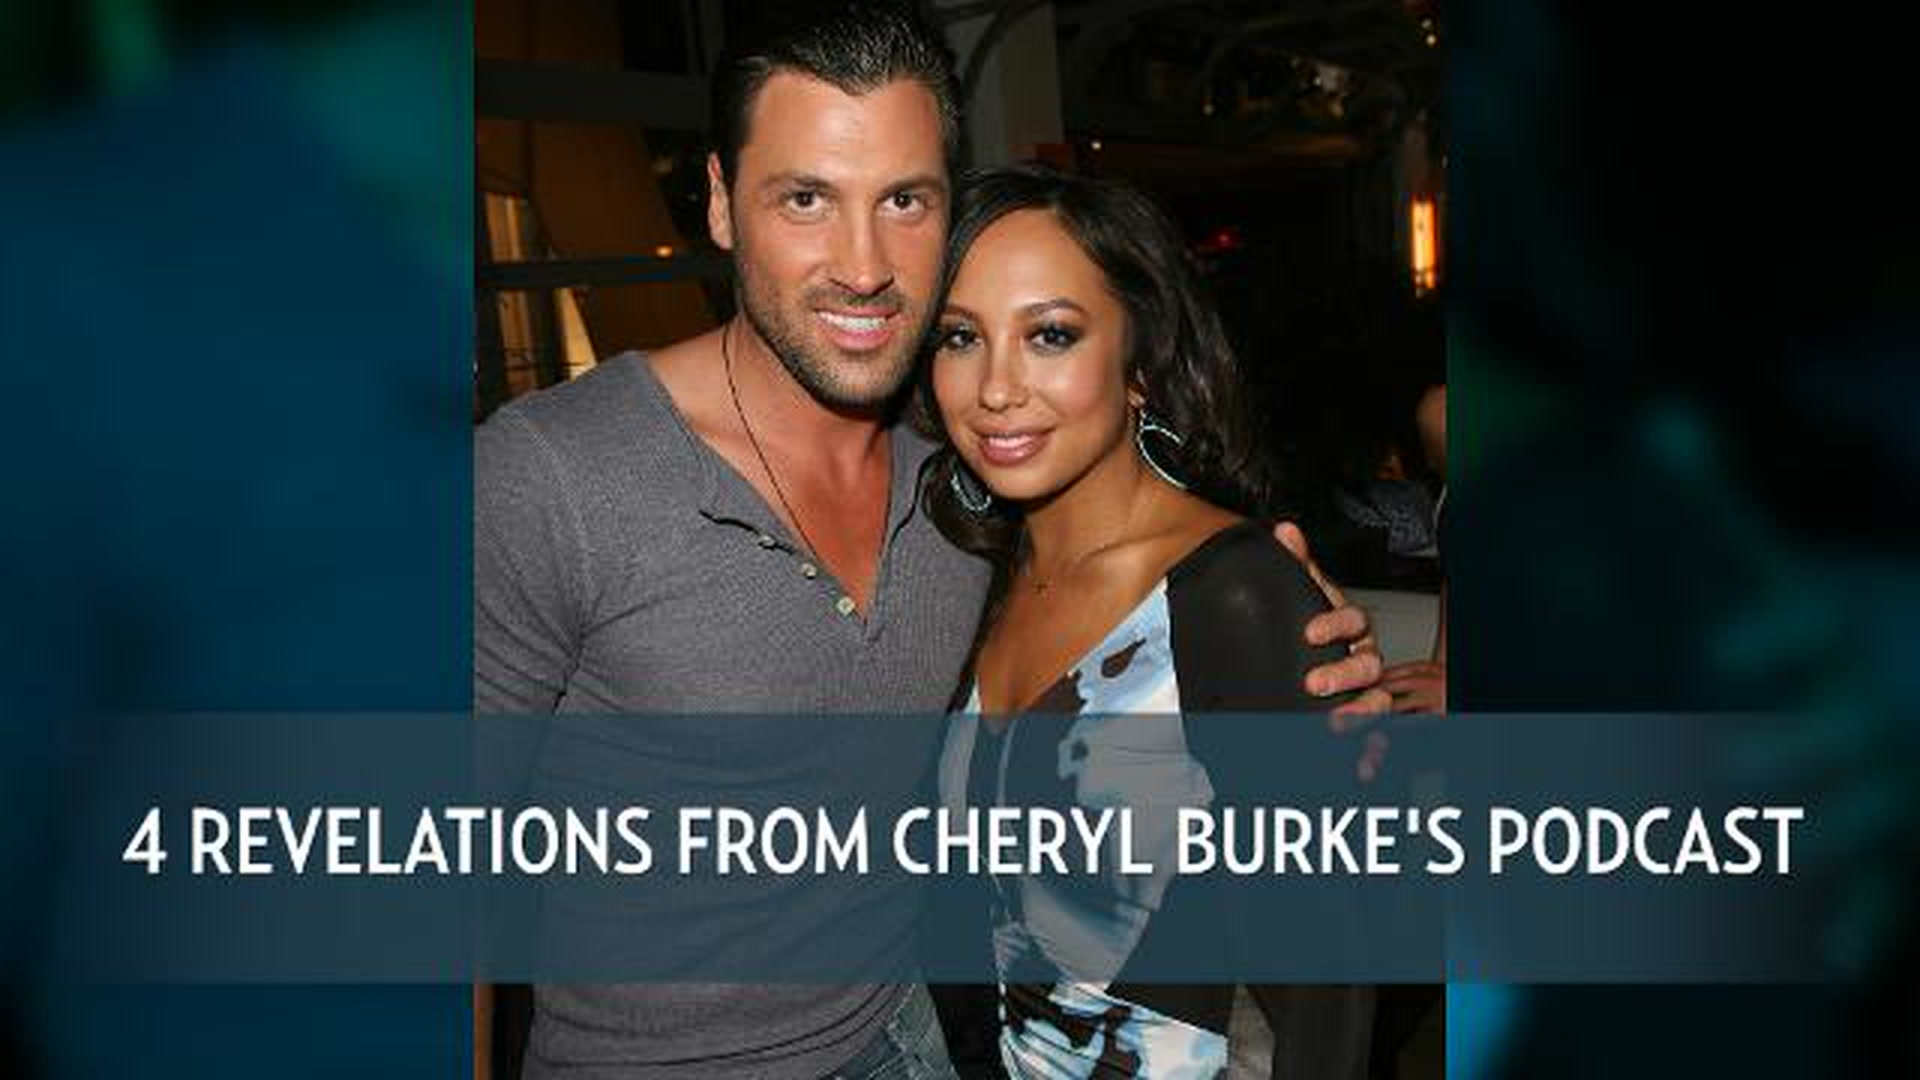 Josh Hopkins dating Cheryl Burke